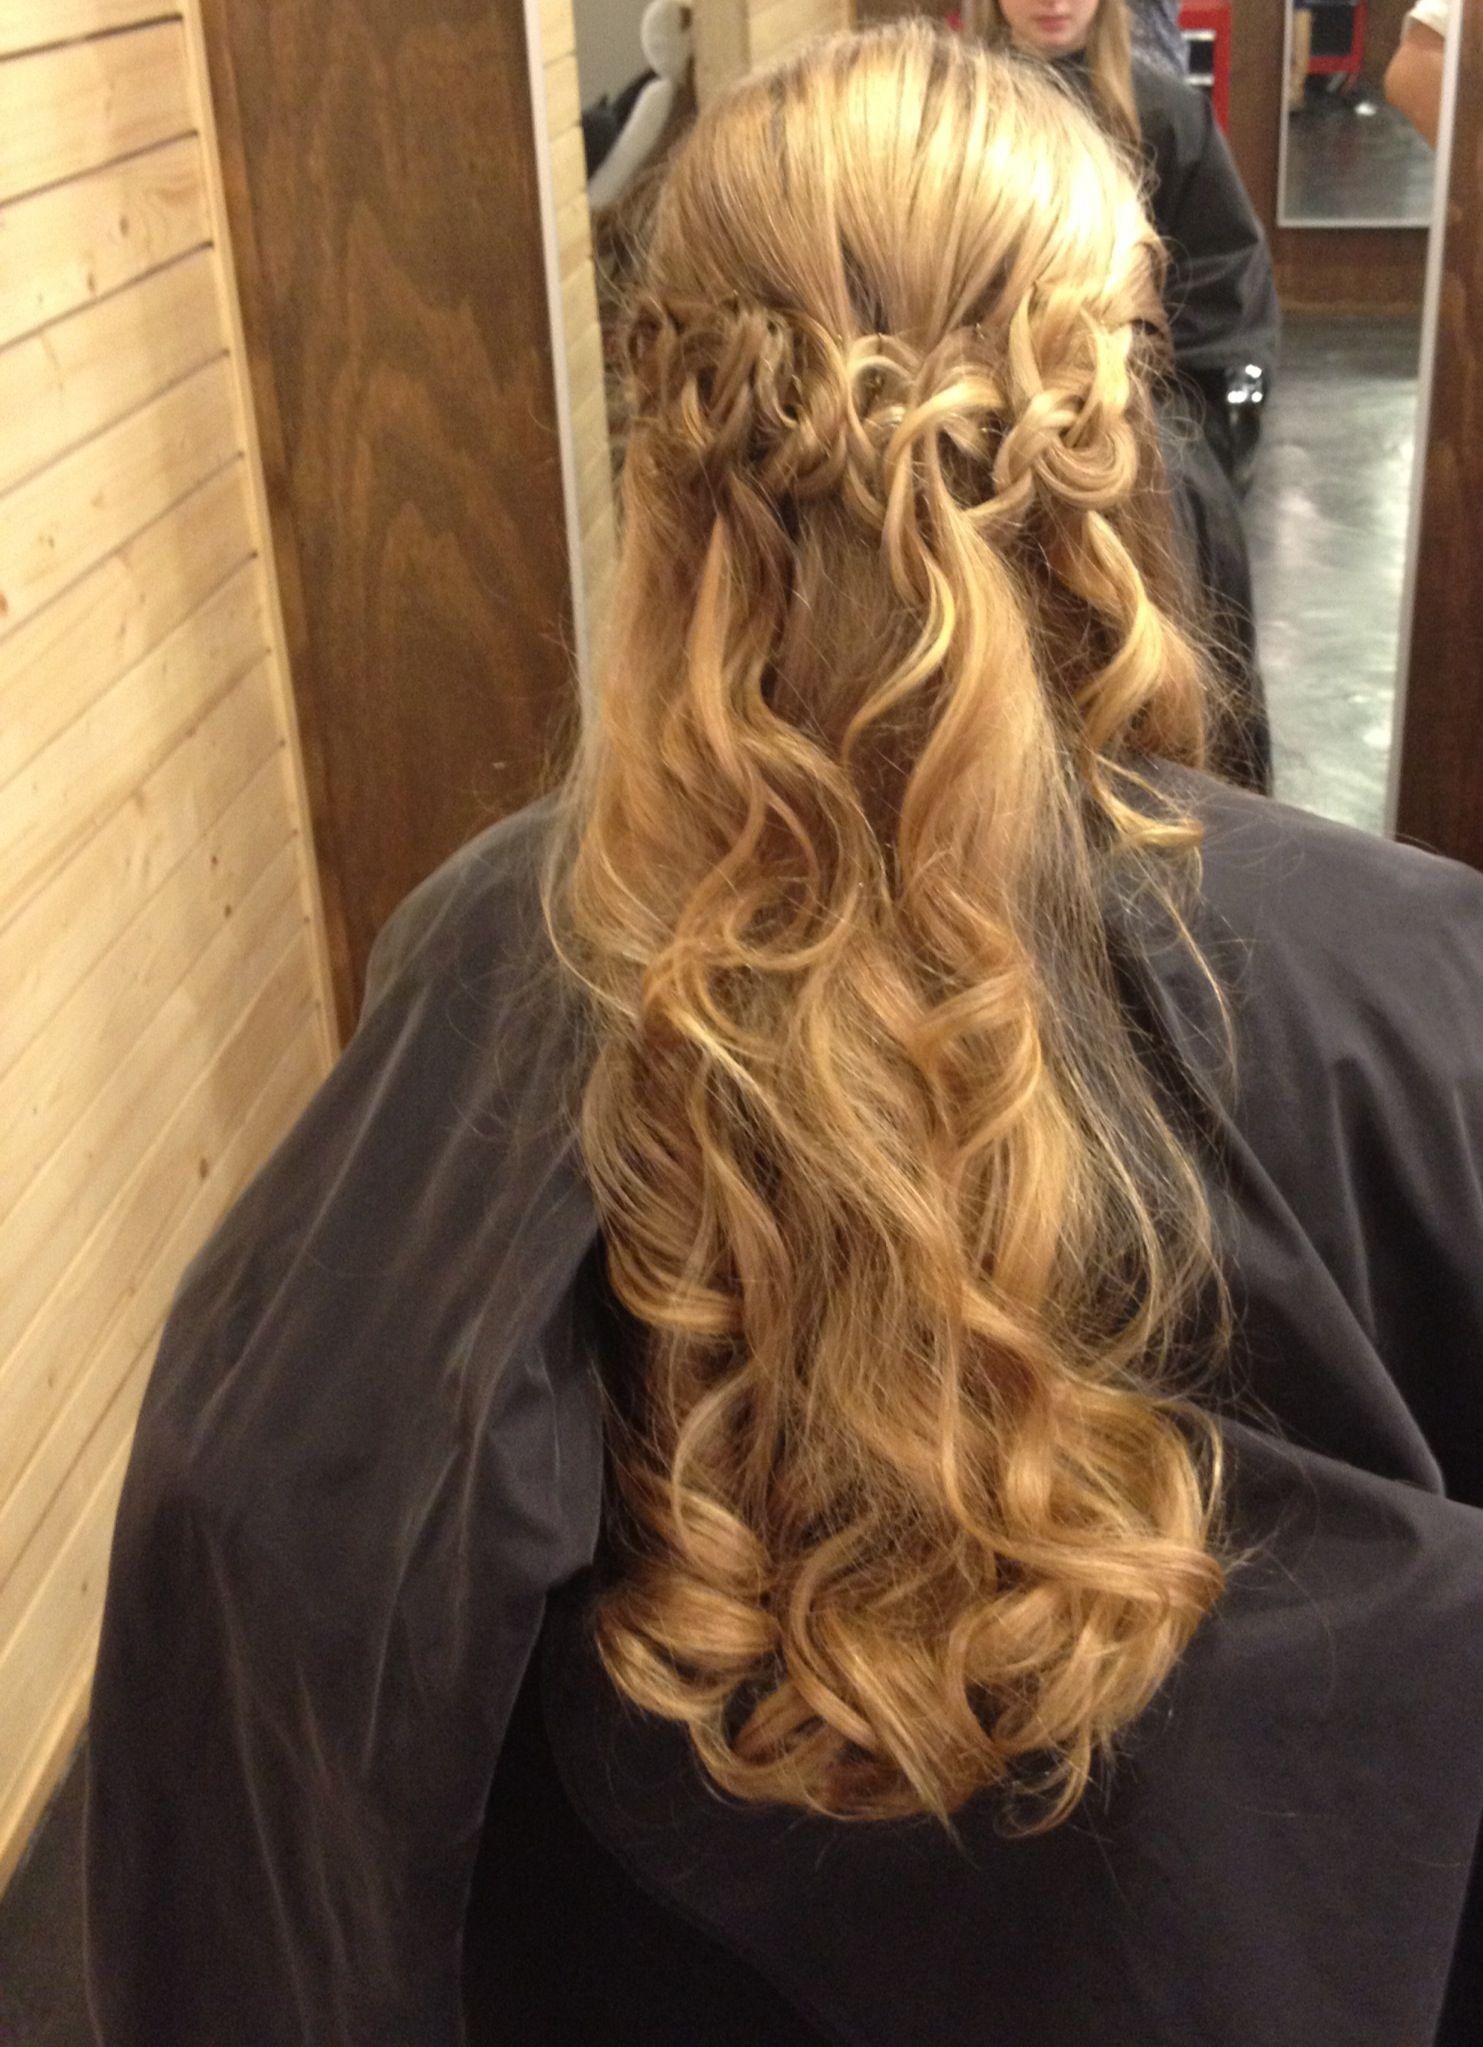 Curly twisted fancy hair style my style pinterest curly hair